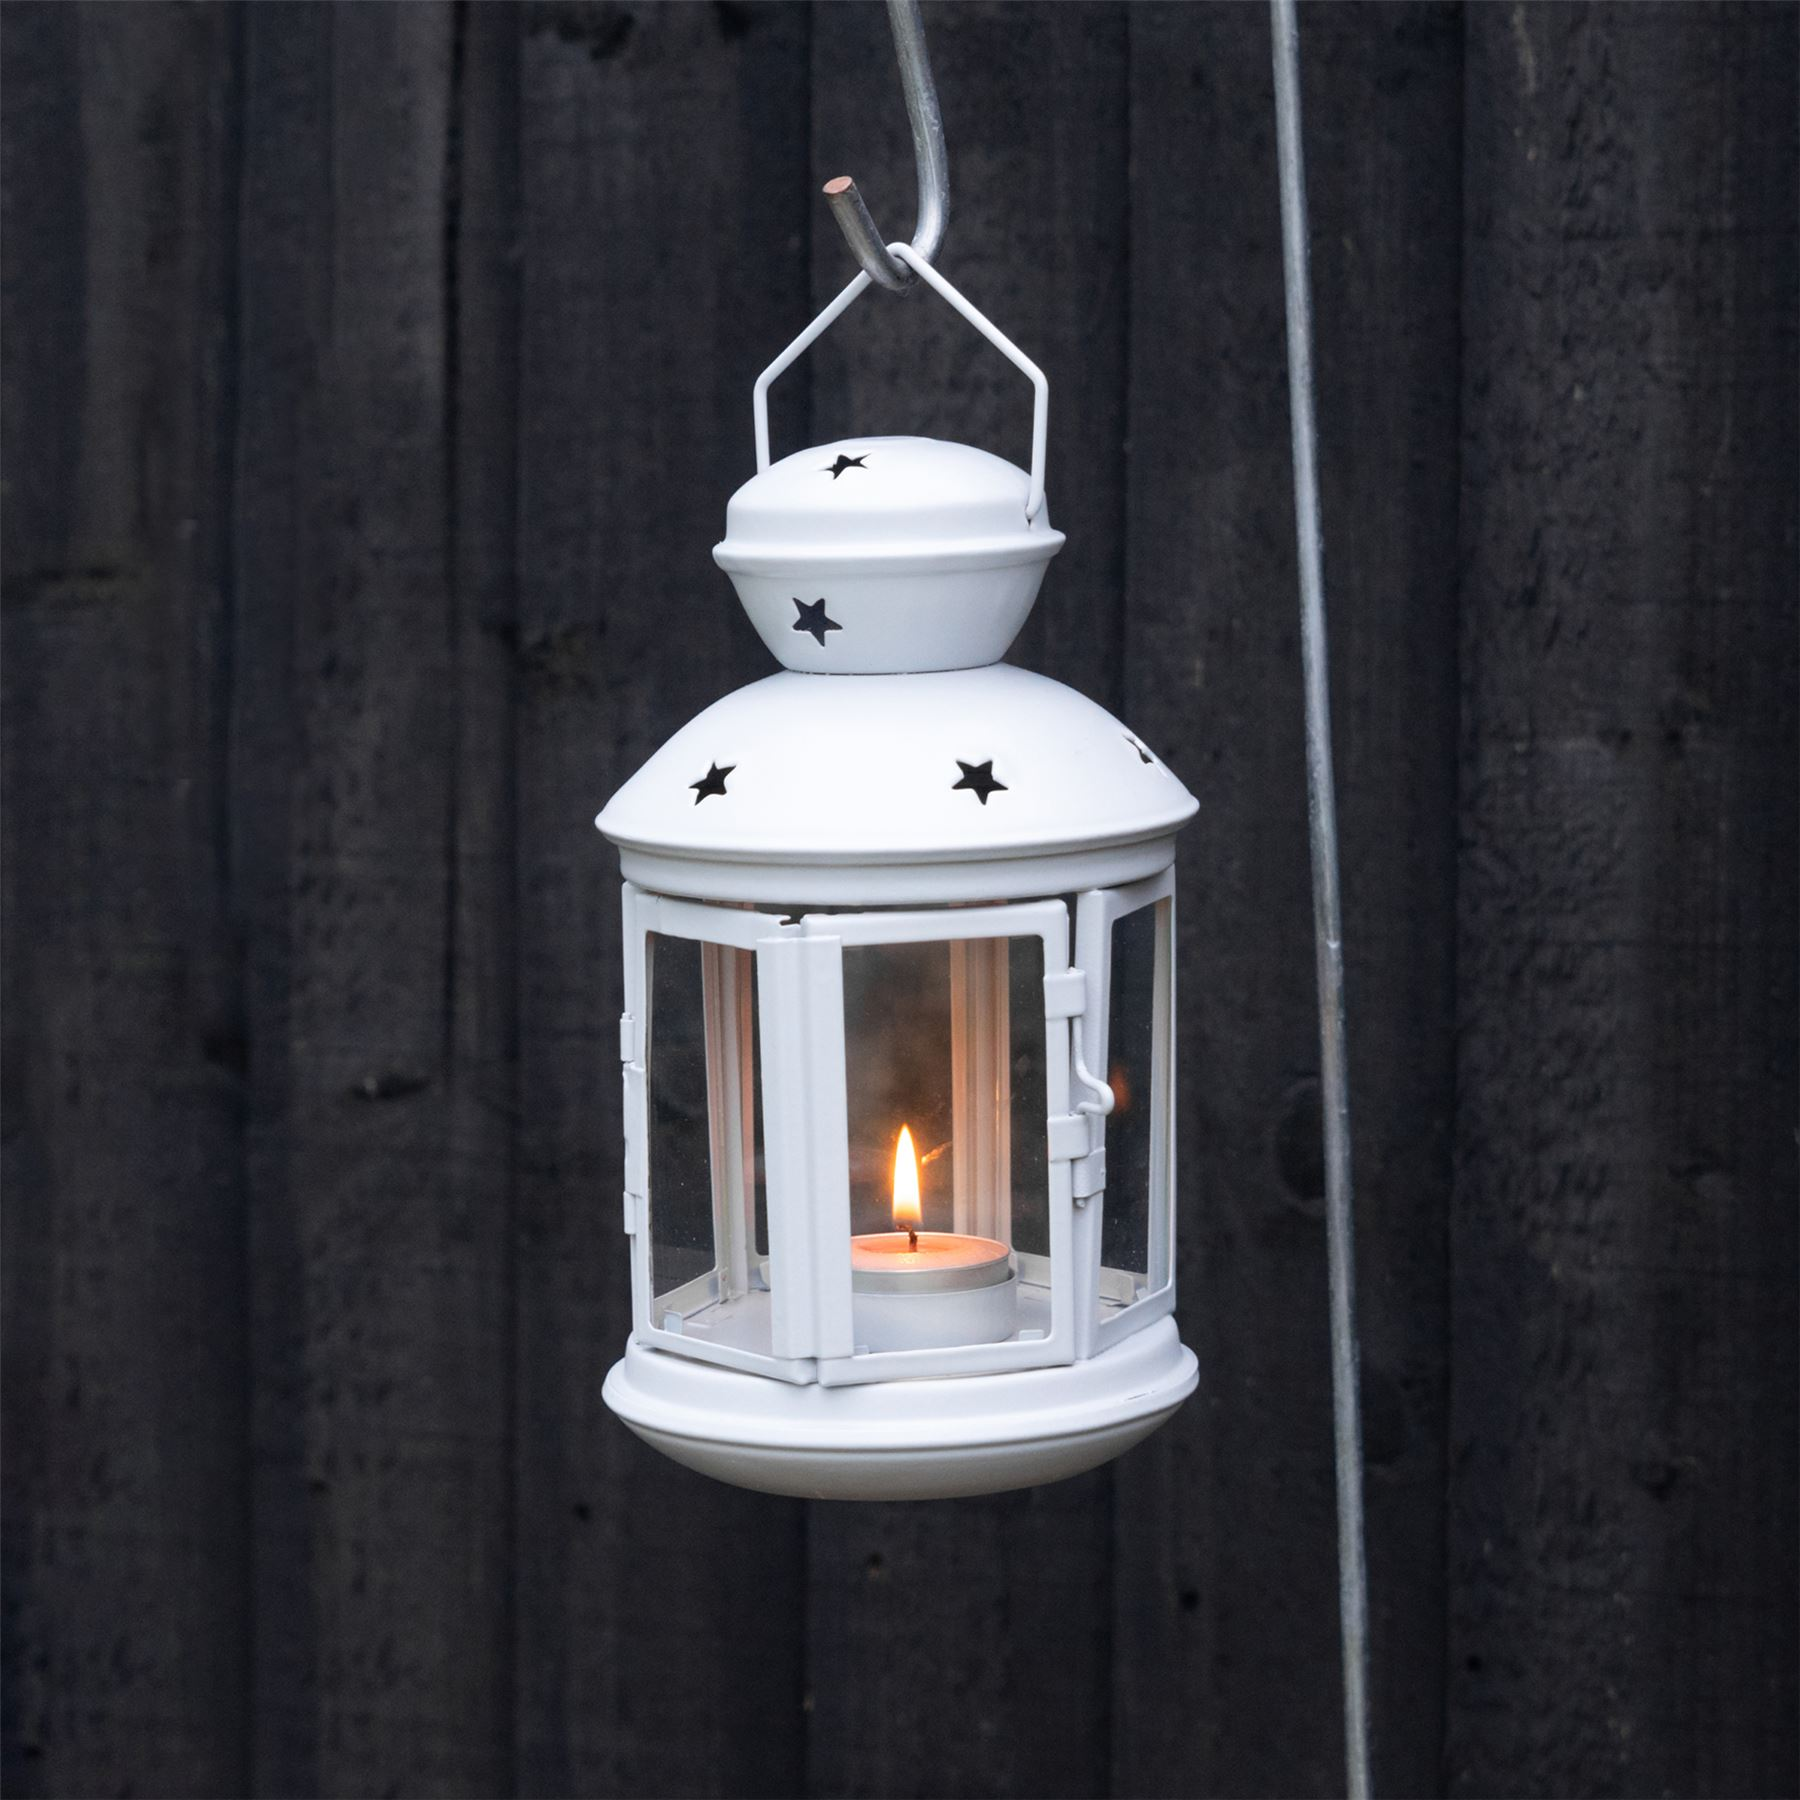 Metal-Candle-Lanterns-Tealight-Holders-Vintage-French-Moroccan-Style-20cm-x2 thumbnail 21